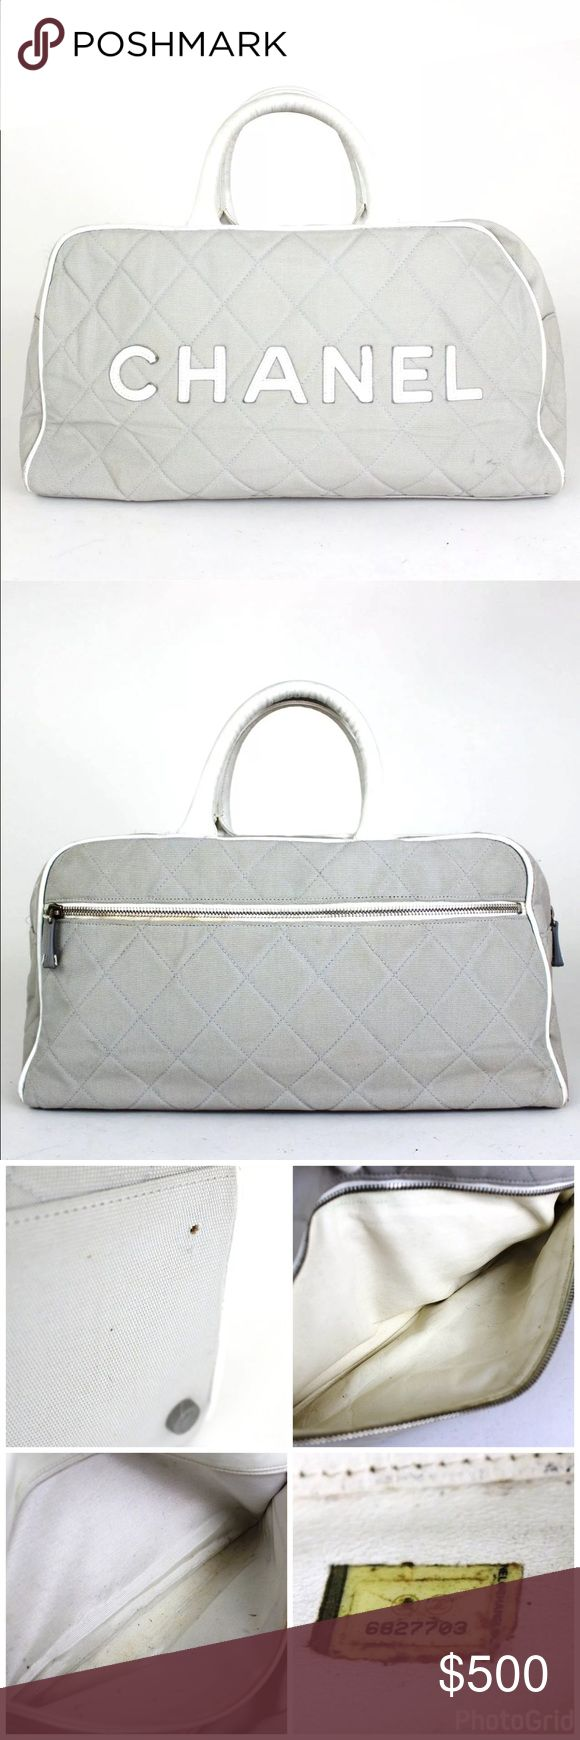 "CHANEL Mini Boston Bag, Hand Bag Brand: CHANEL  Item Description: Mini Boston Bag, Hand Bag  Made in: Italy  Material: Canvas, Leather  Color: Gray, White  Model: Sports Line   Serial number: 6827703  Size(cm): H 20cm W 37cm D11 cm  Size(inches): H 7.87"" W 14.57"" D 4.33""  Handle size(cm): 27cm  Handle size(inches): 10.63""  Attachment: None CHANEL Bags Travel Bags"